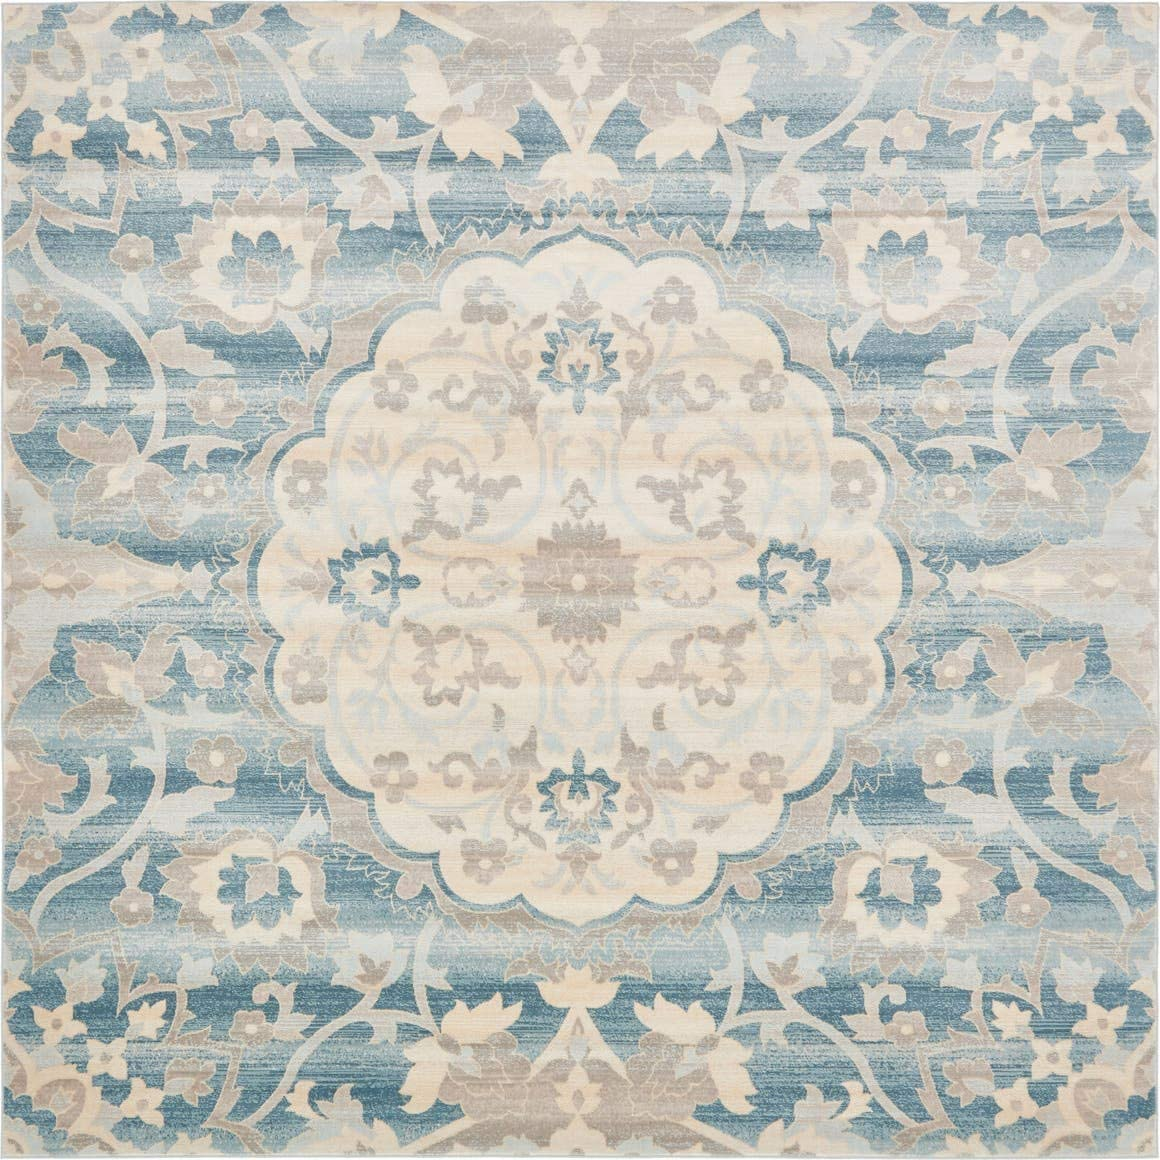 Unique Loom Paris Collection Pastel Tones Traditional Distressed Blue Square Rug 8 0 x 8 0